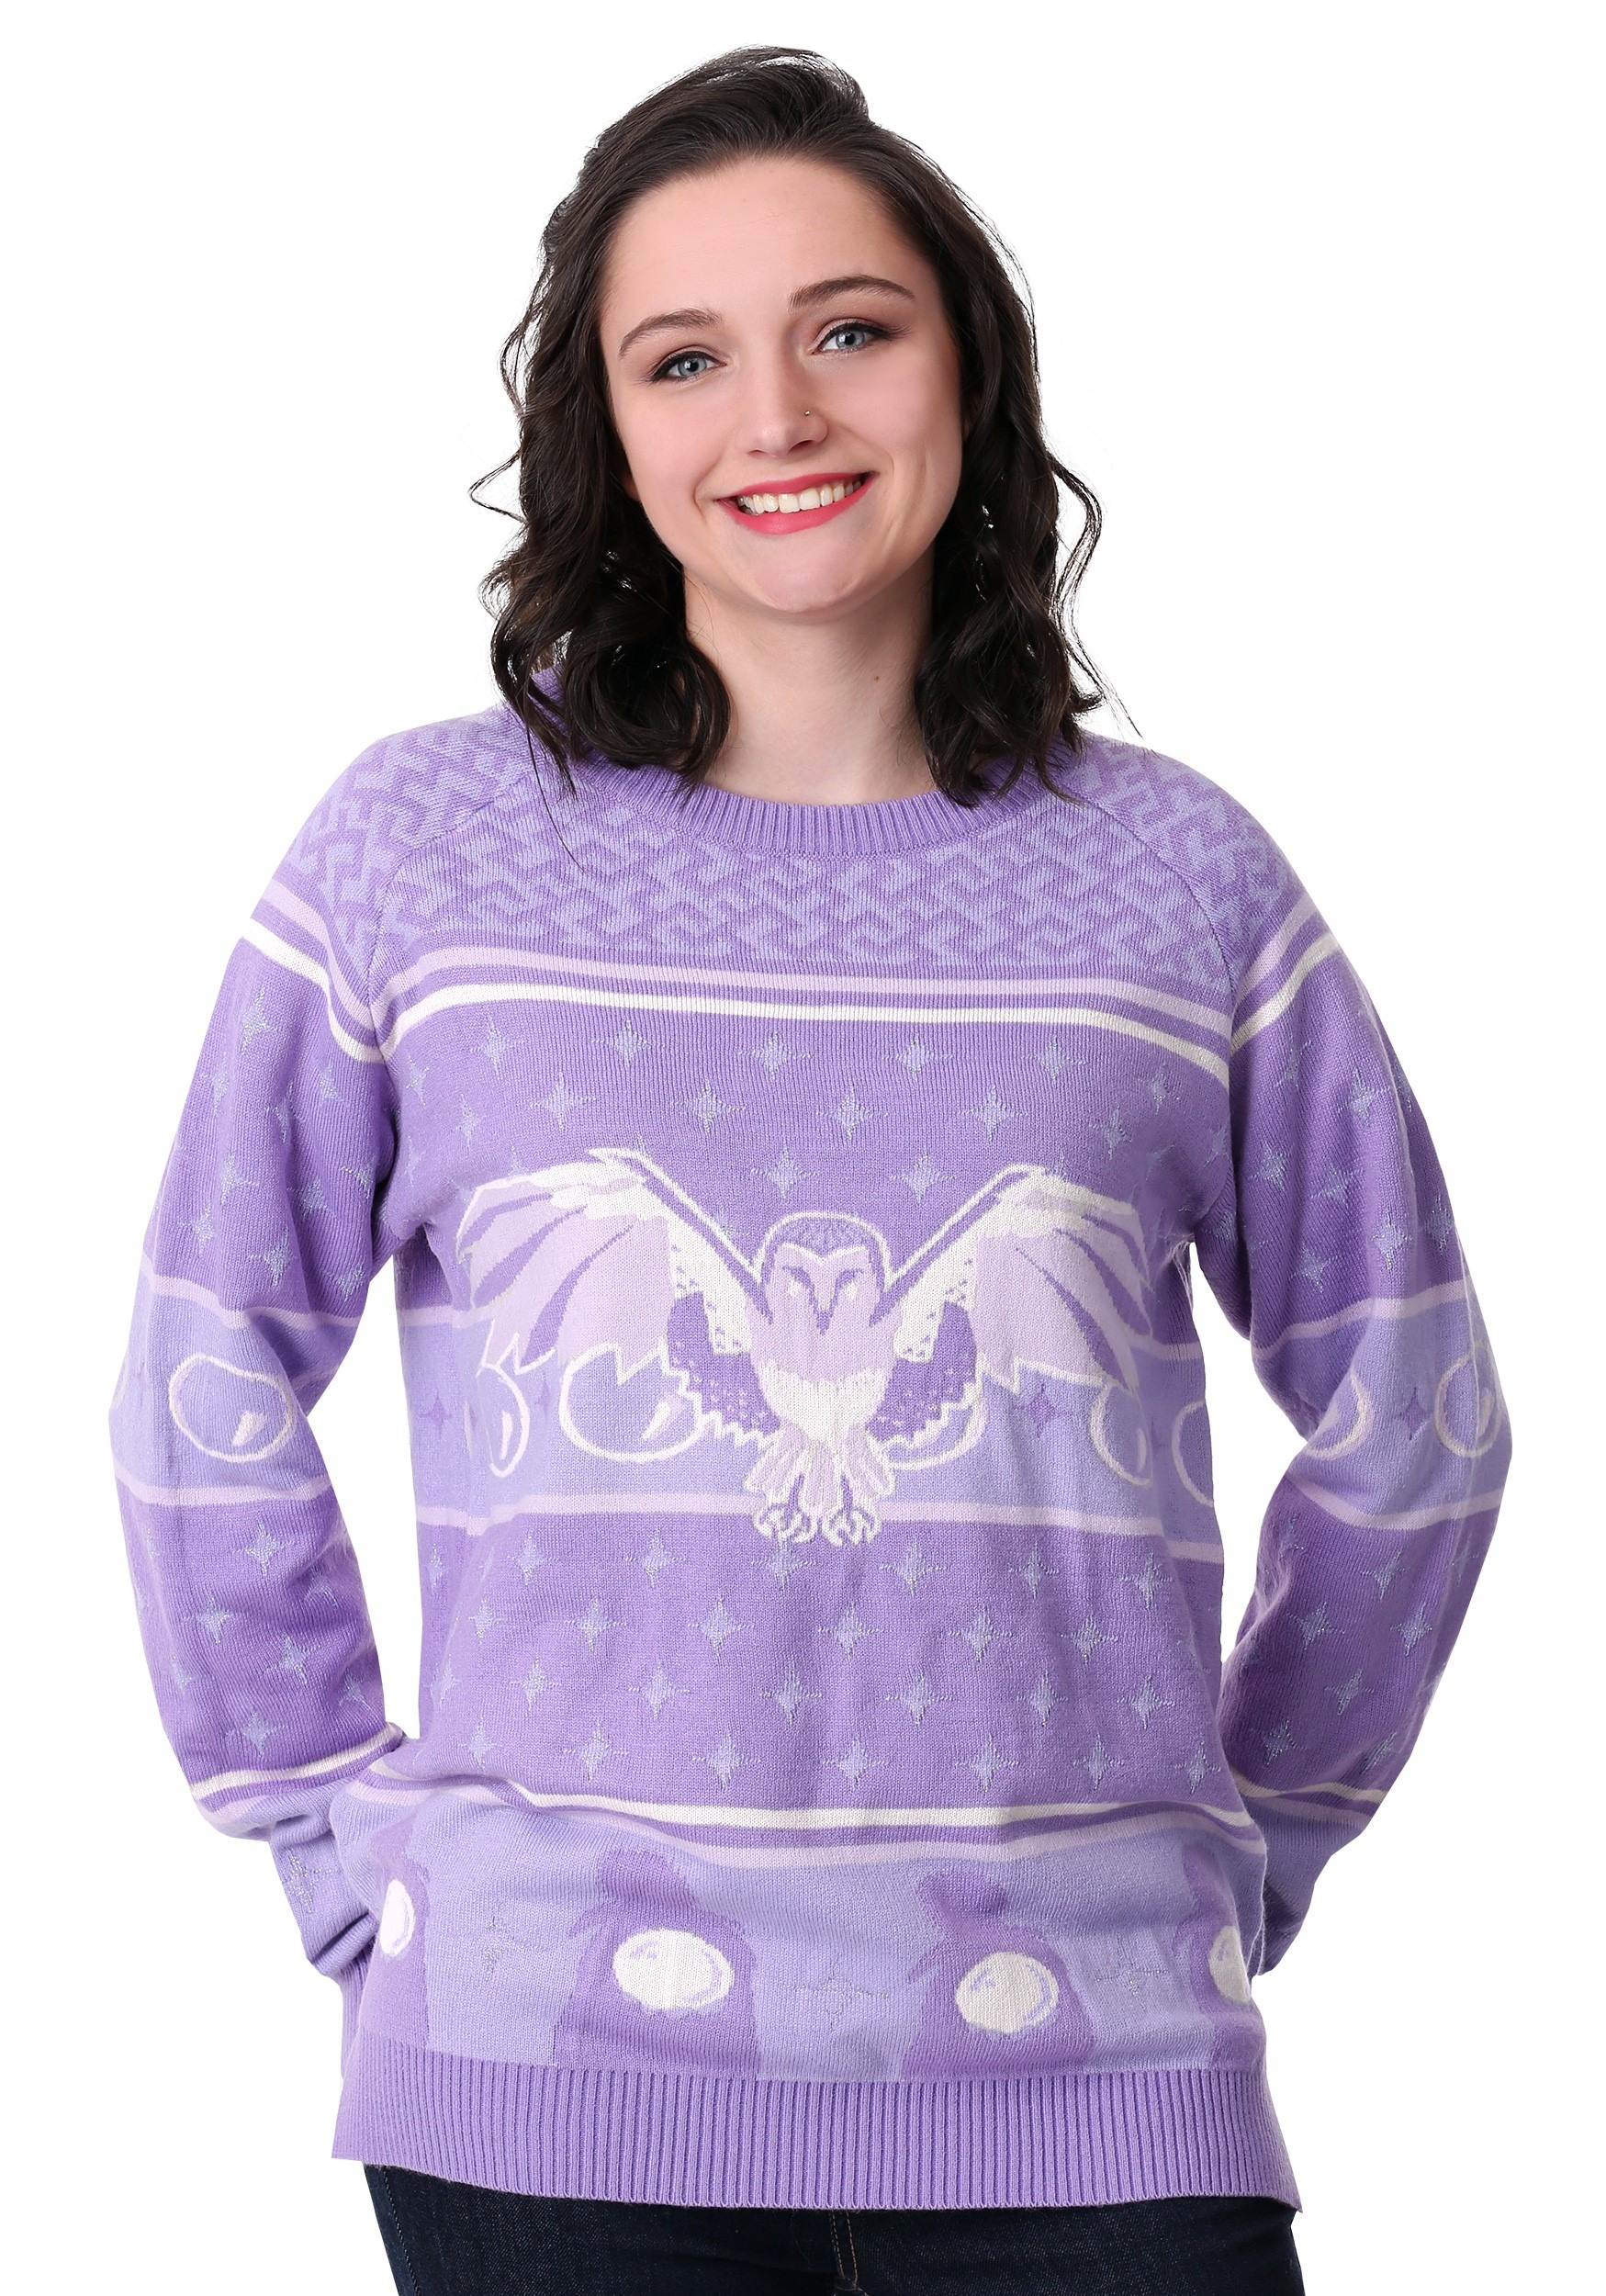 Labyrinth Owl Hi-Lo Ugly Christmas Sweater for Women